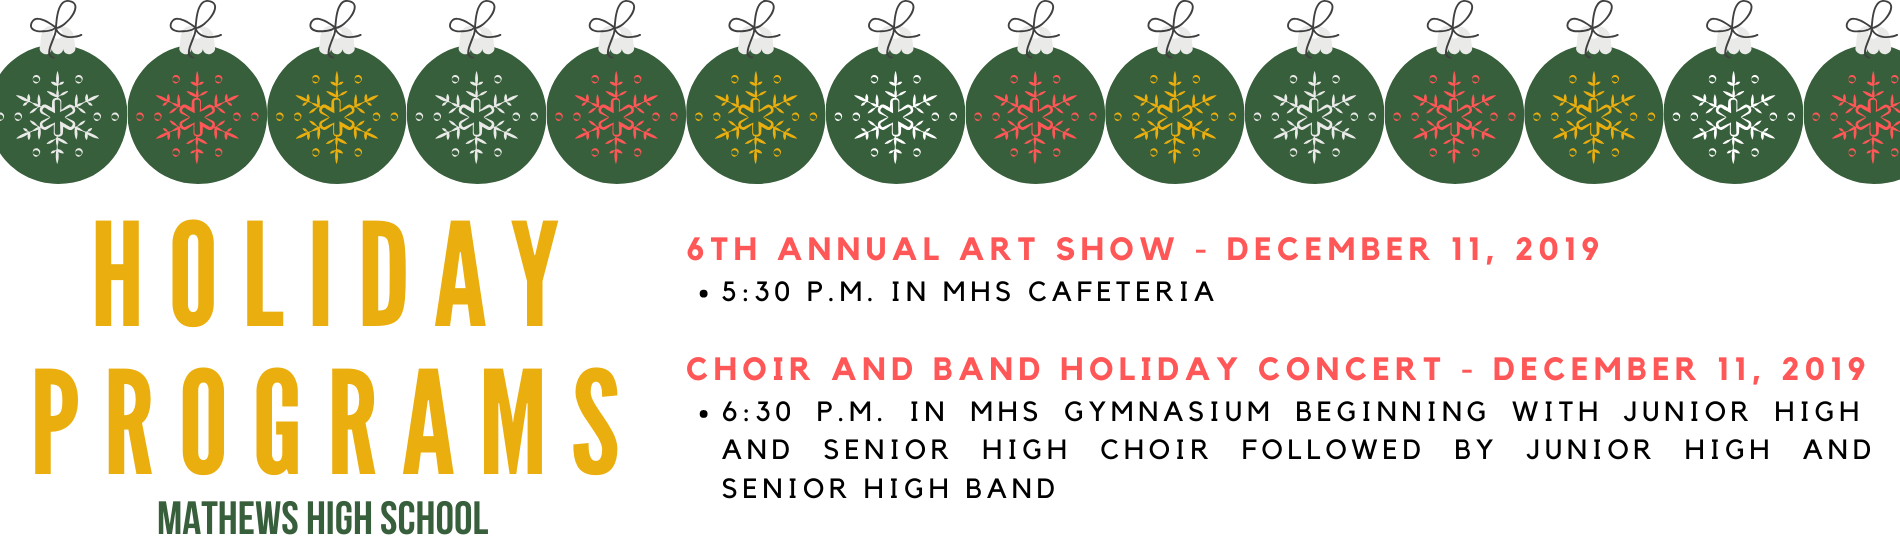 Mathews High Schools holiday concerts